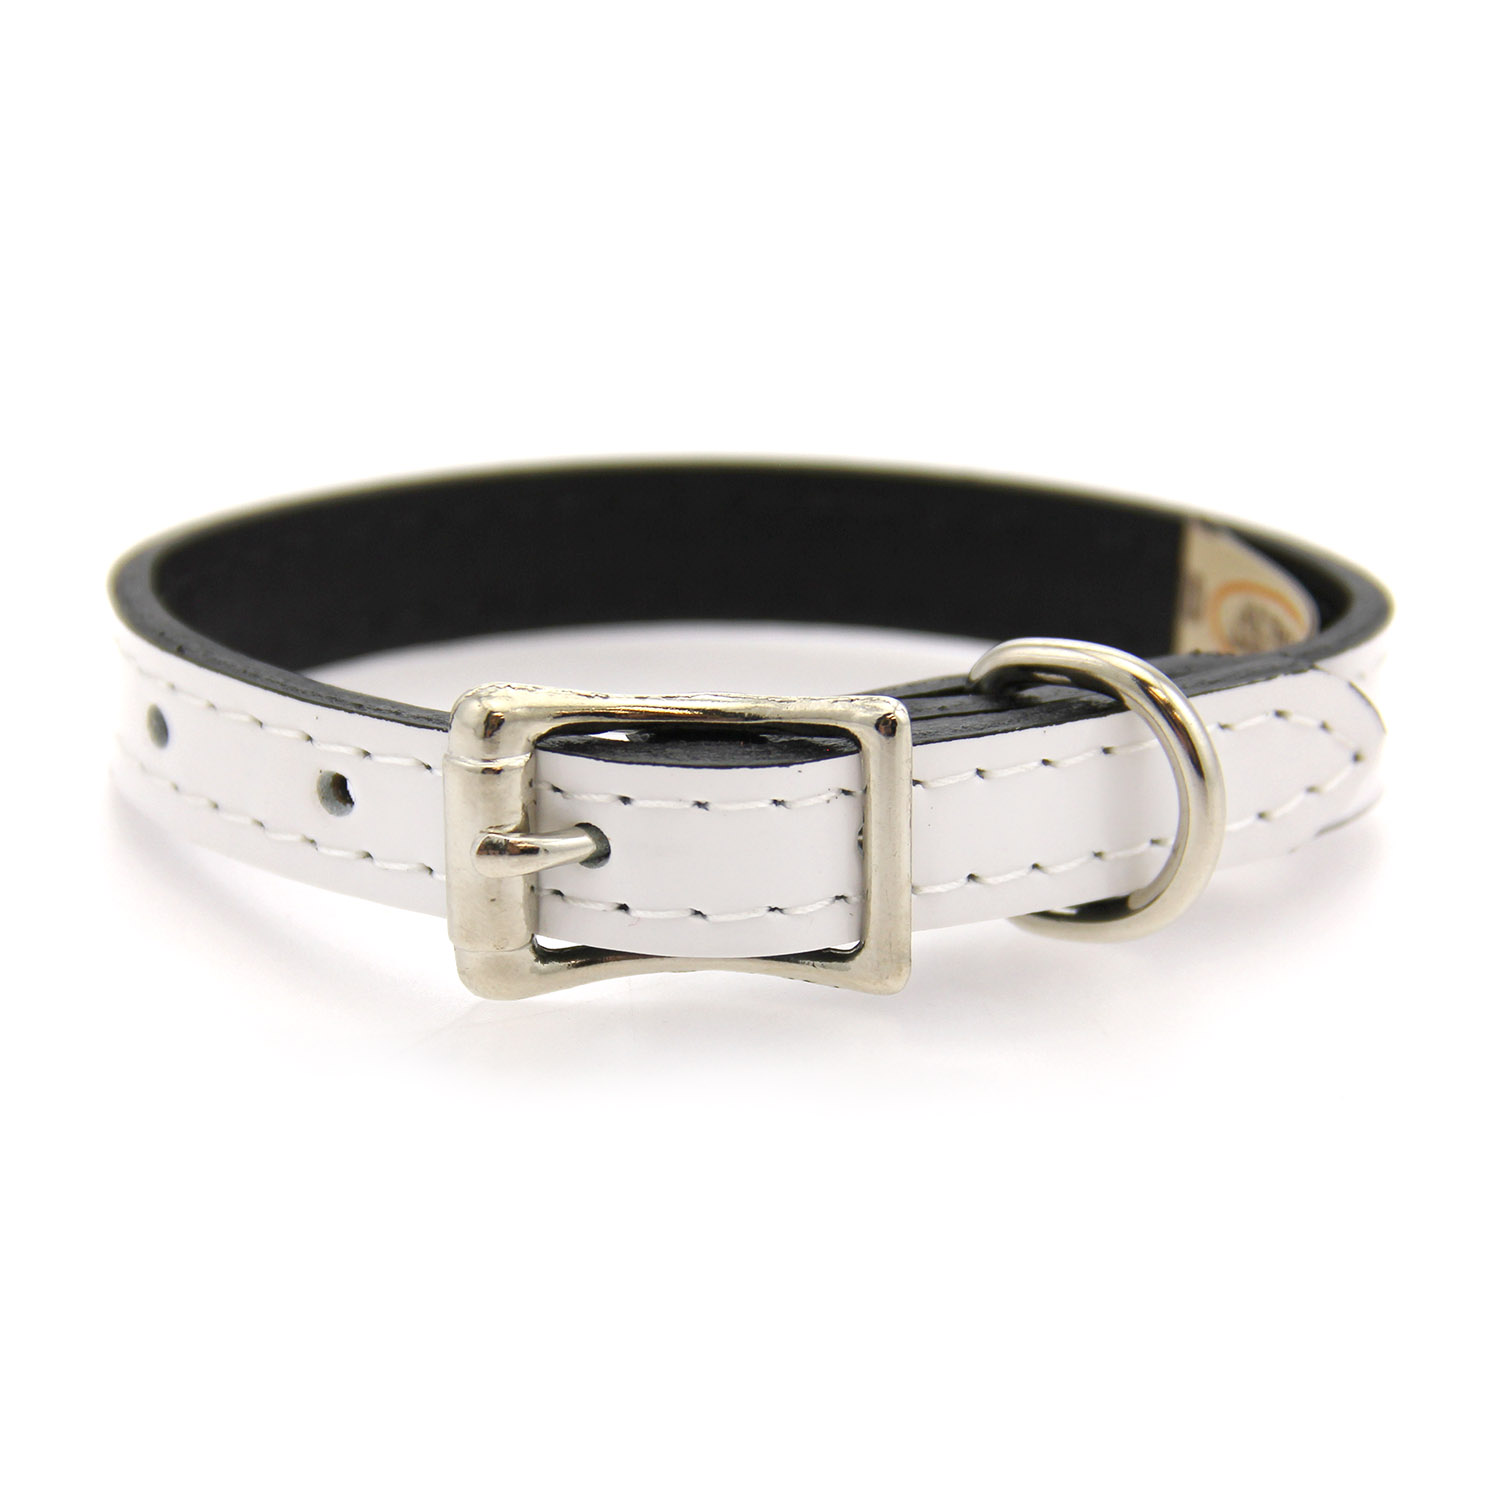 Manhattan Patent Leather Dog Collar by Auburn Leather - White